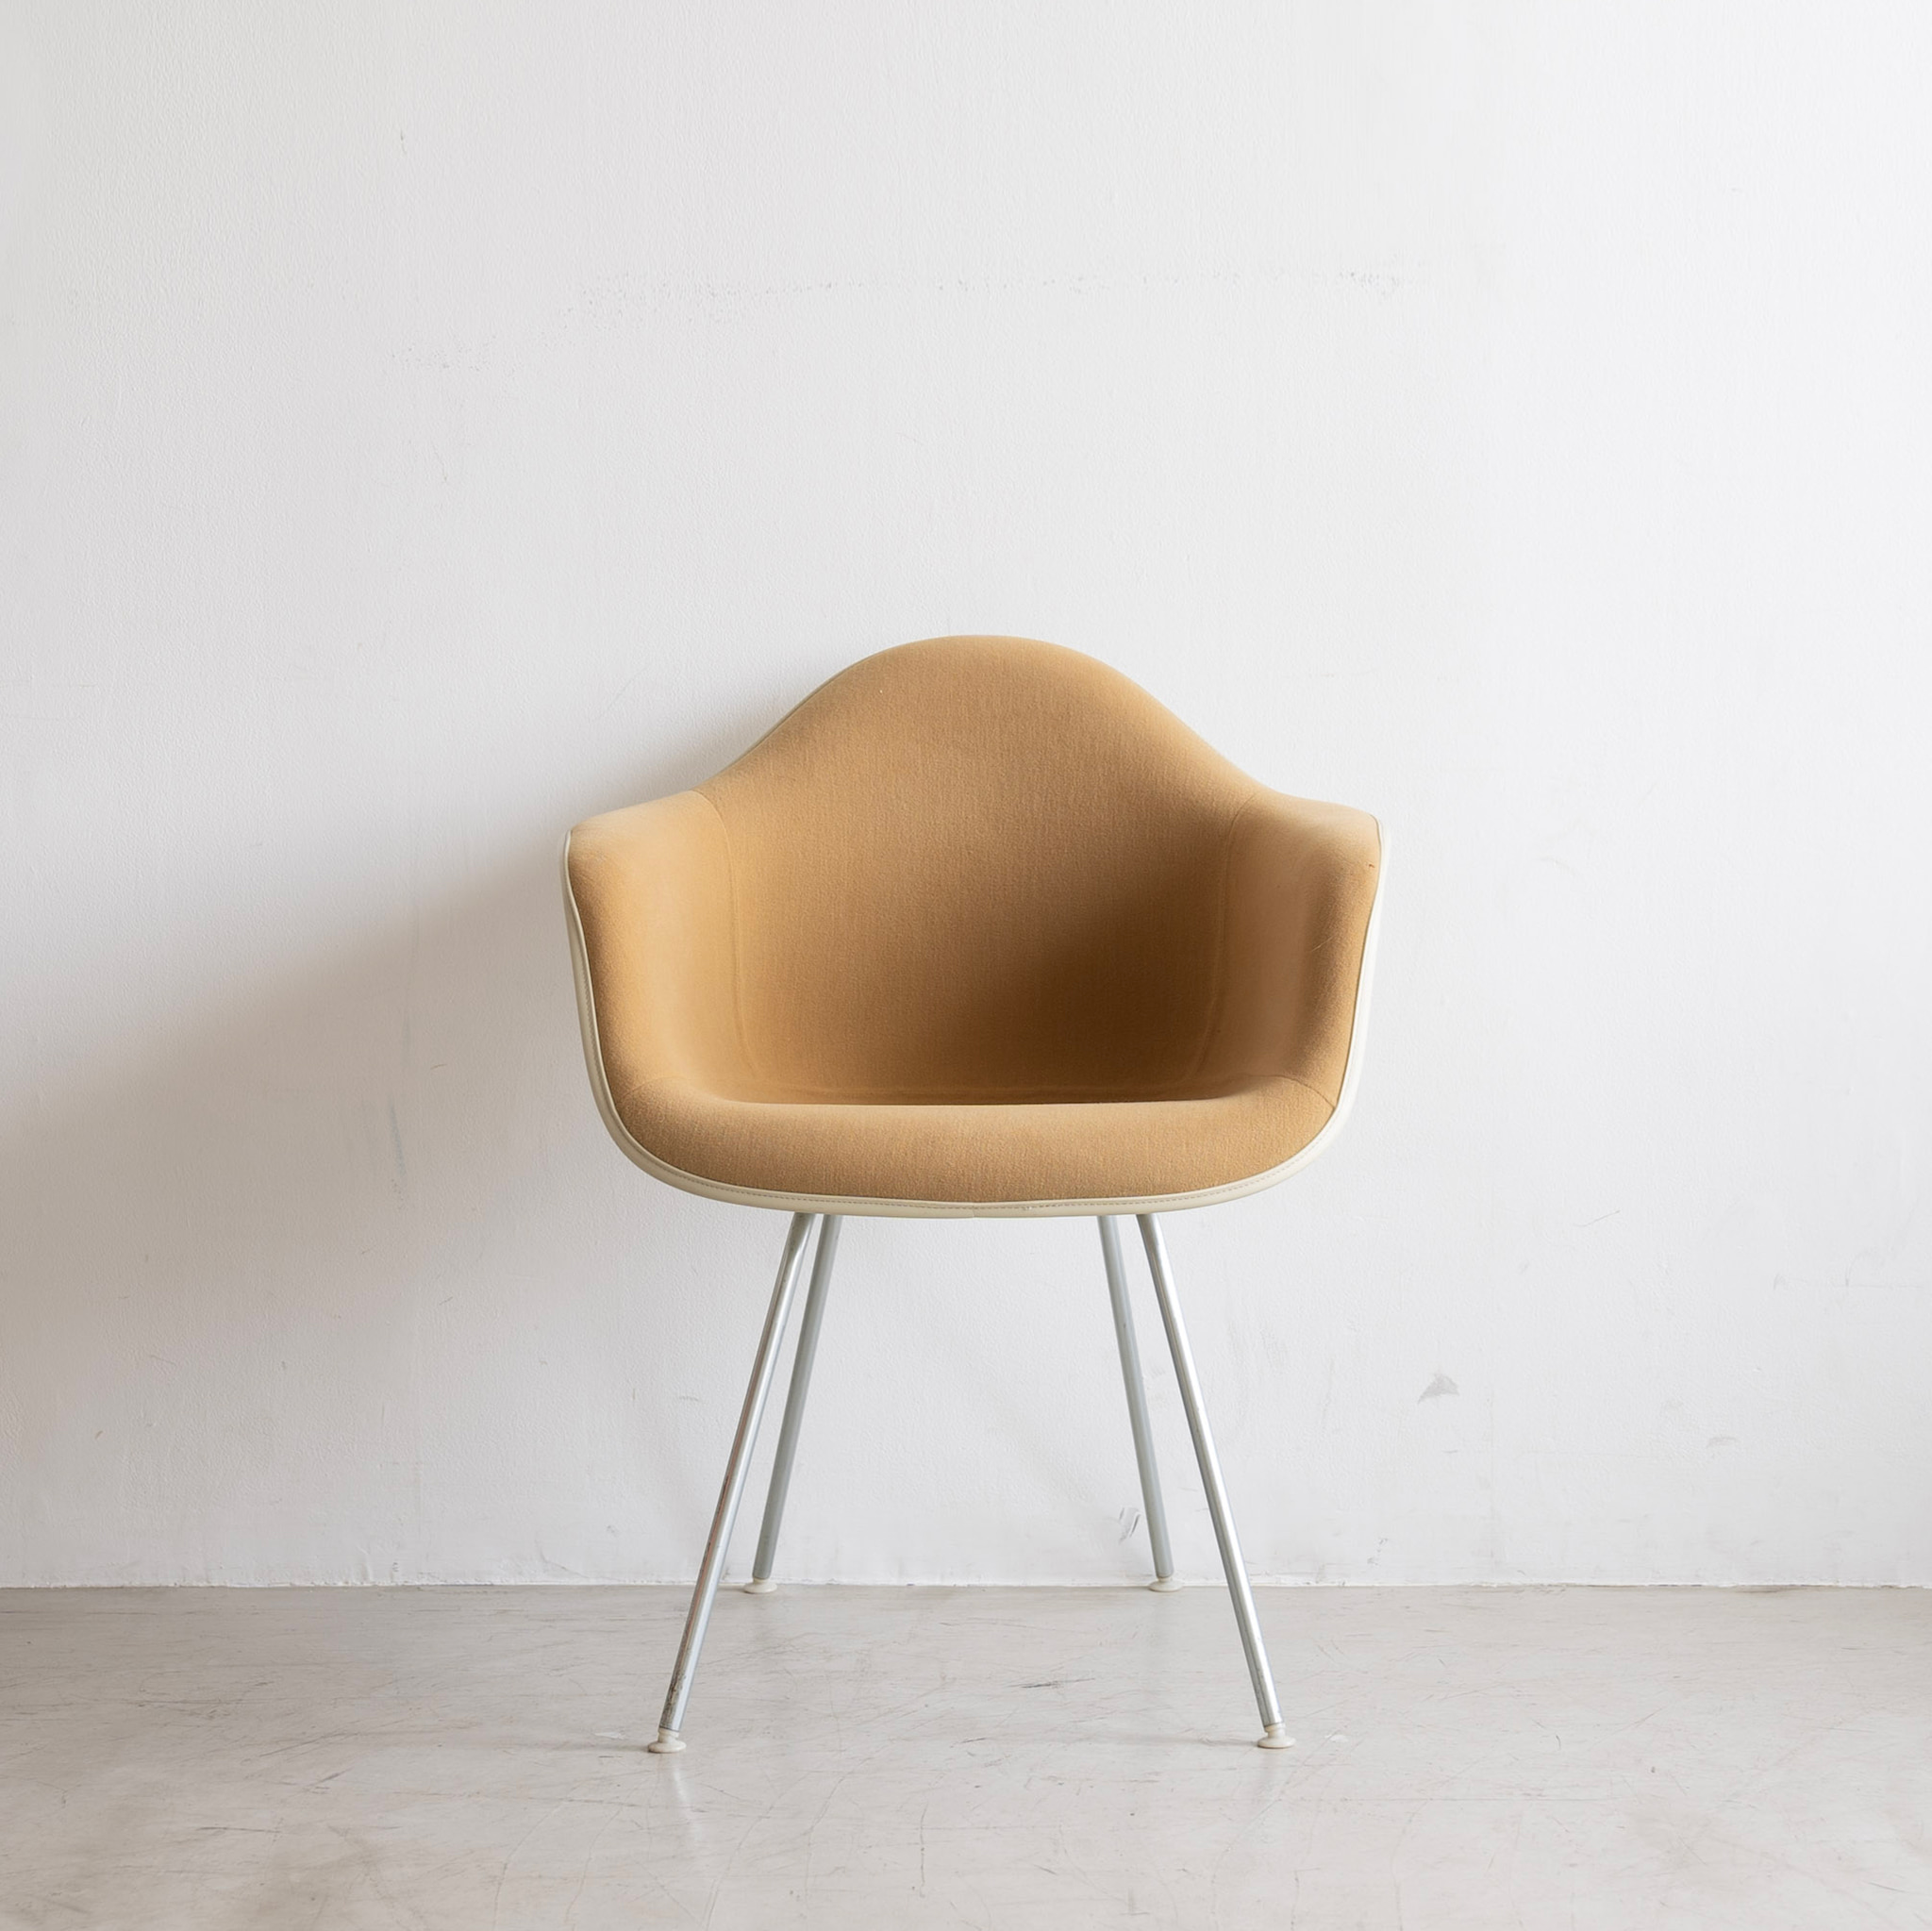 Charles & Ray Eames Herman Miller Upholstered Textile Fiberglass DAX Arm Shell Chair